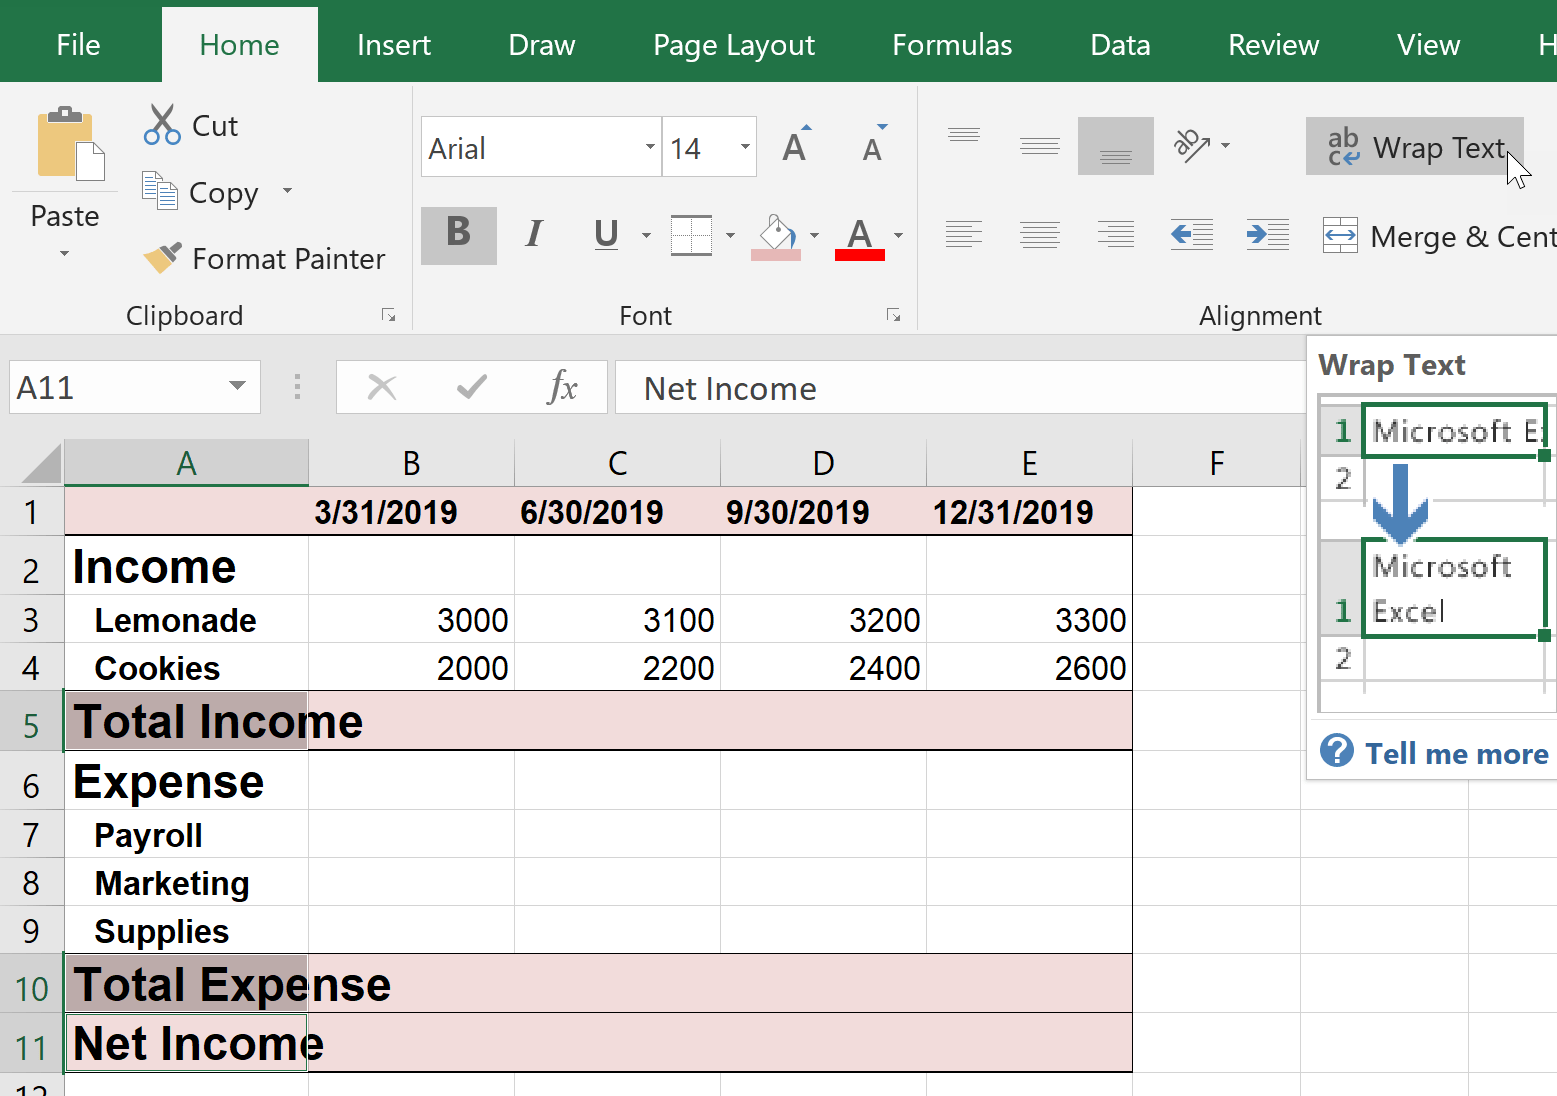 Tutorial Formatting Microsoft Excel Worksheets